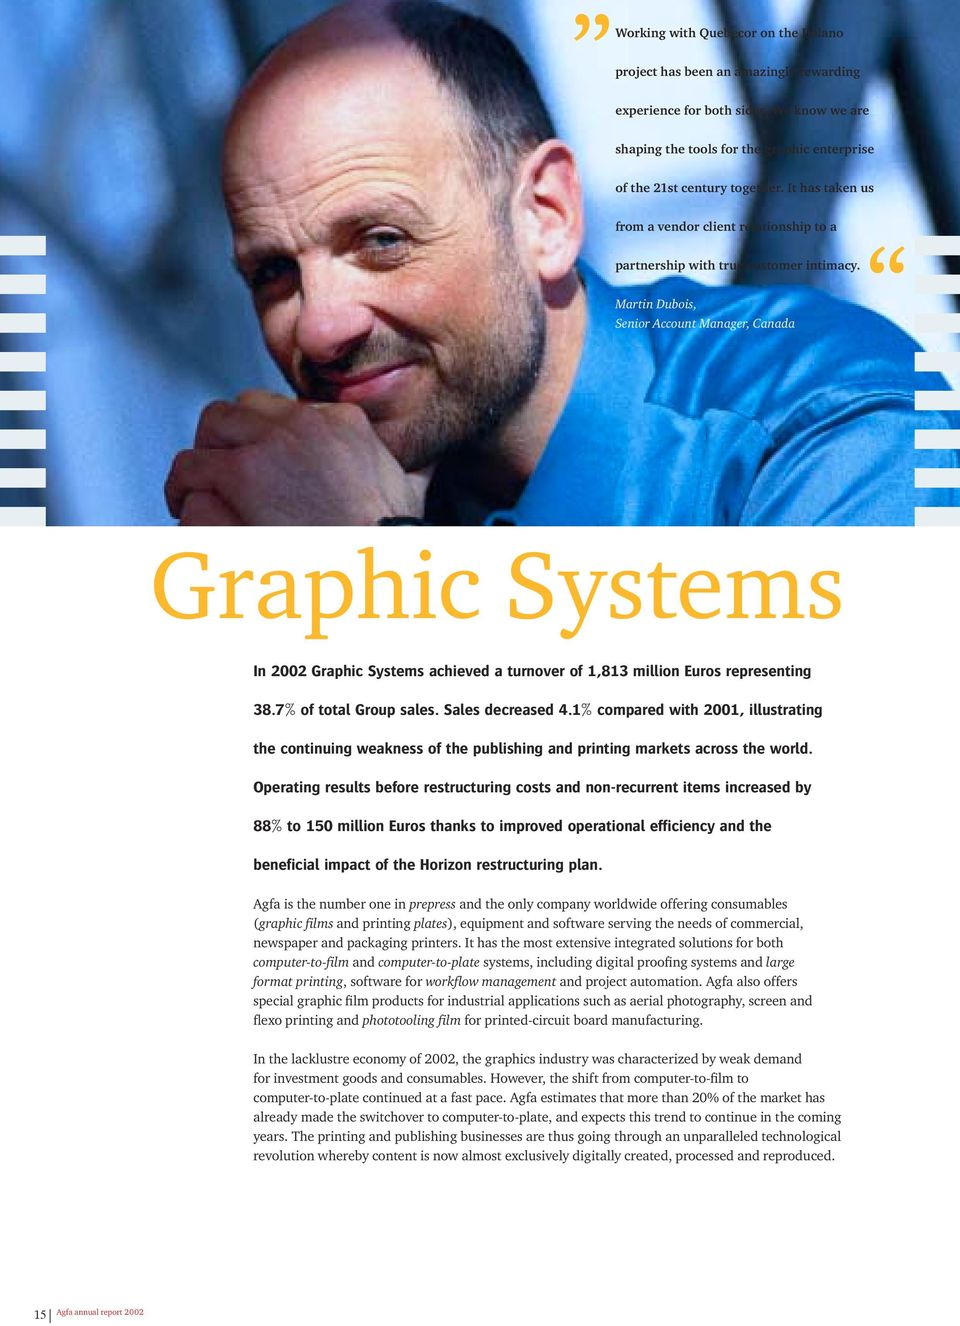 Martin Dubois, Senior Account Manager, Canada Graphic Systems In 2002 Graphic Systems achieved a turnover of 1,813 million Euros representing 38.7% of total Group sales. Sales decreased 4.